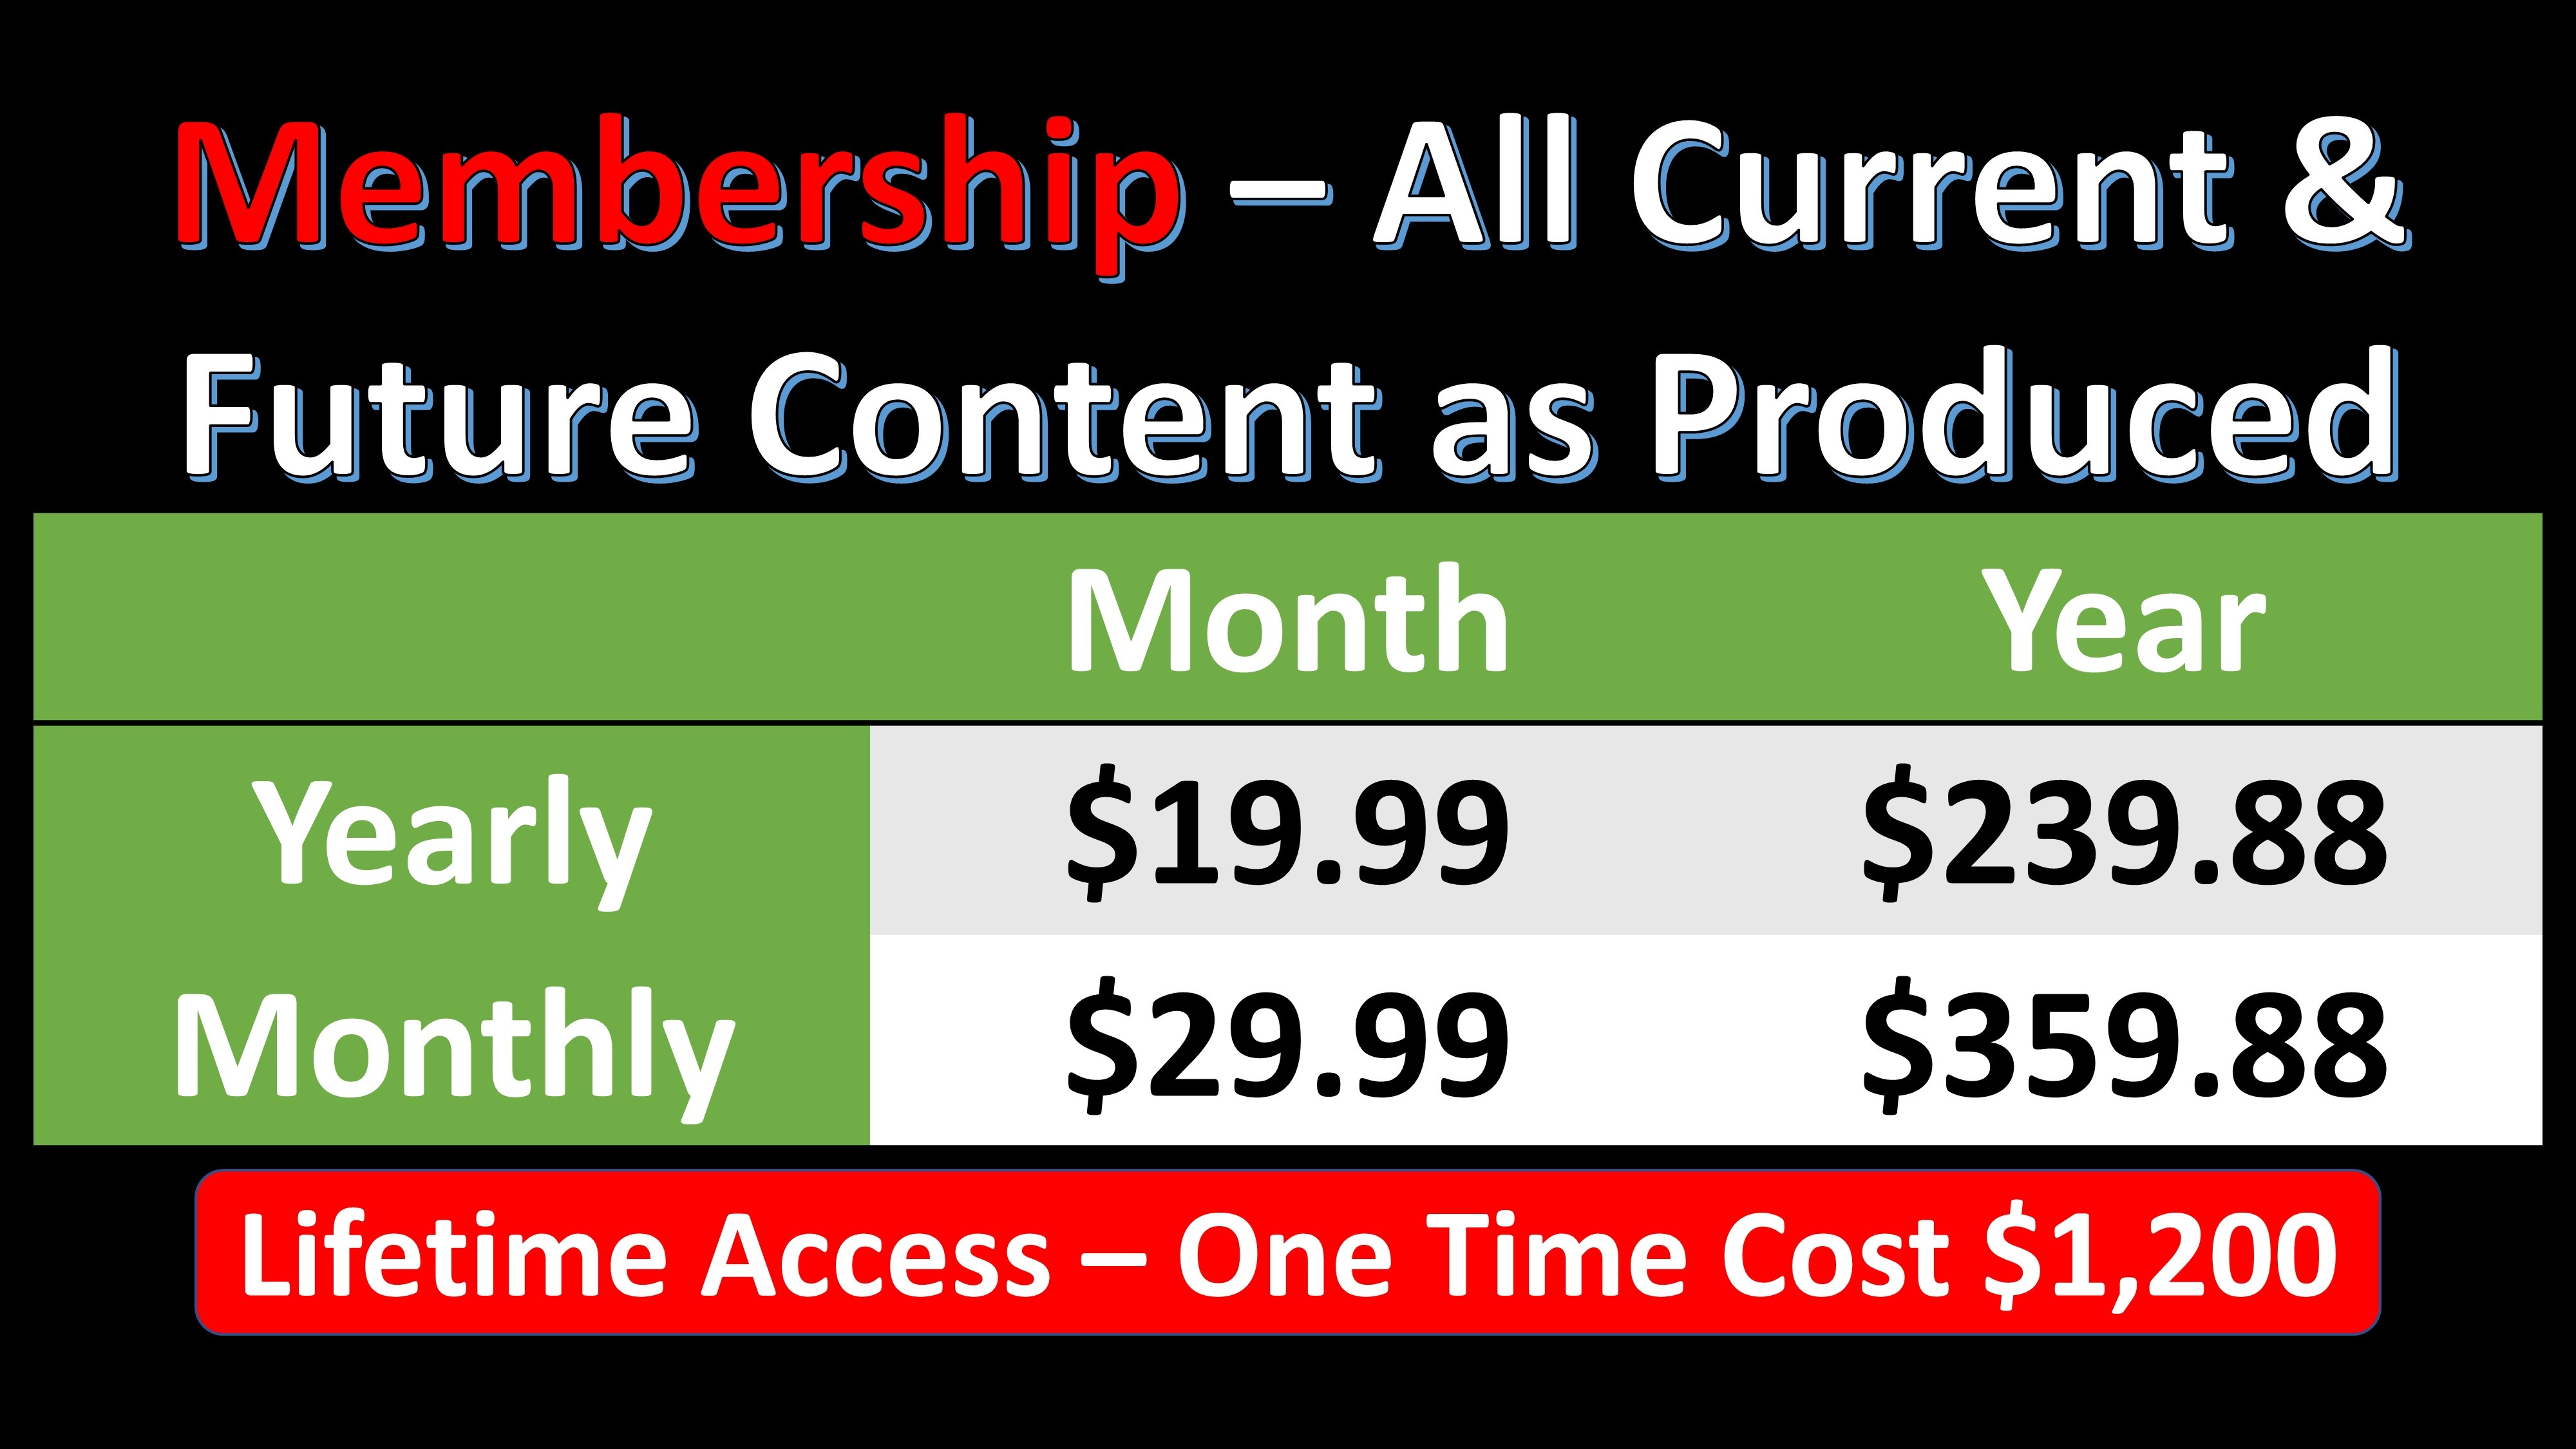 Membership - Access All Current & Future Content as Produced